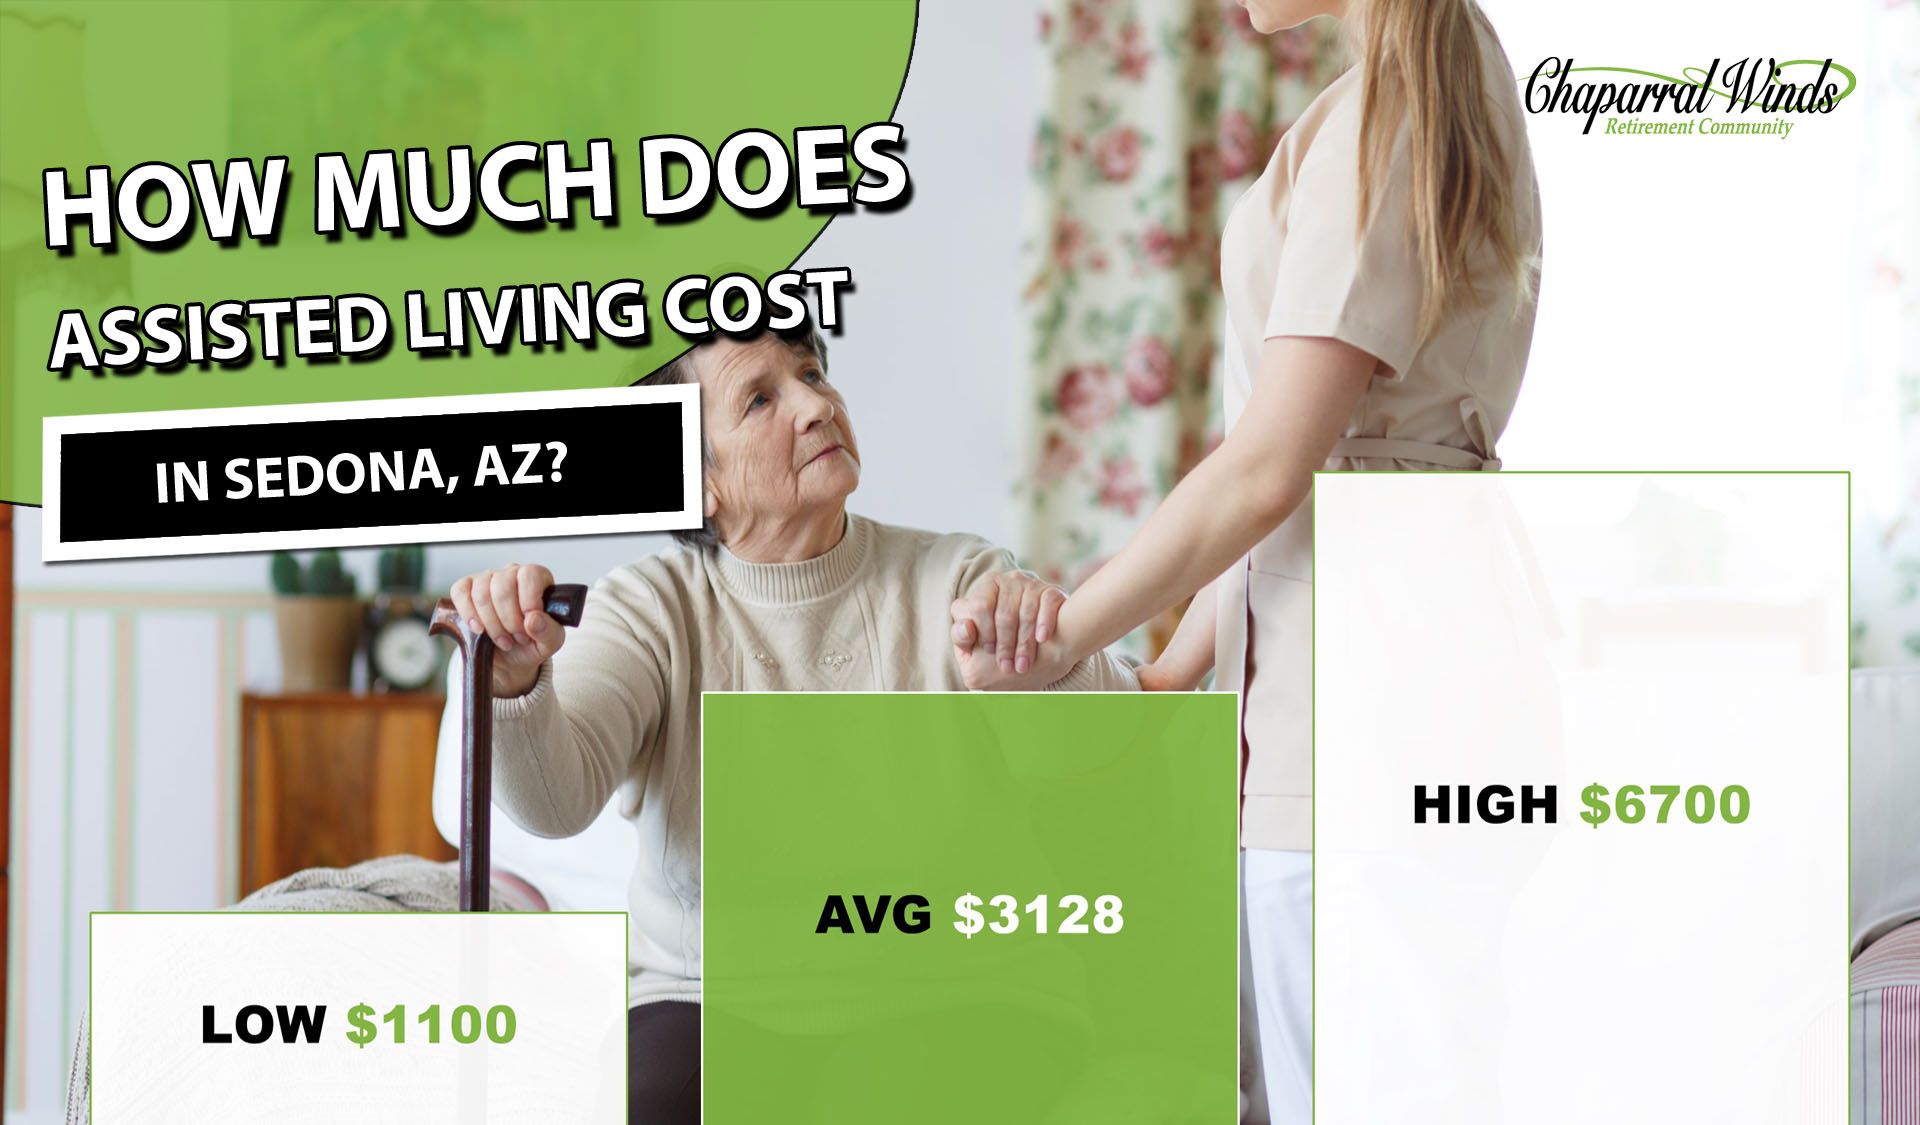 Assisted Living Cost Sedona. AZ   2019 Average Prices - CWRC